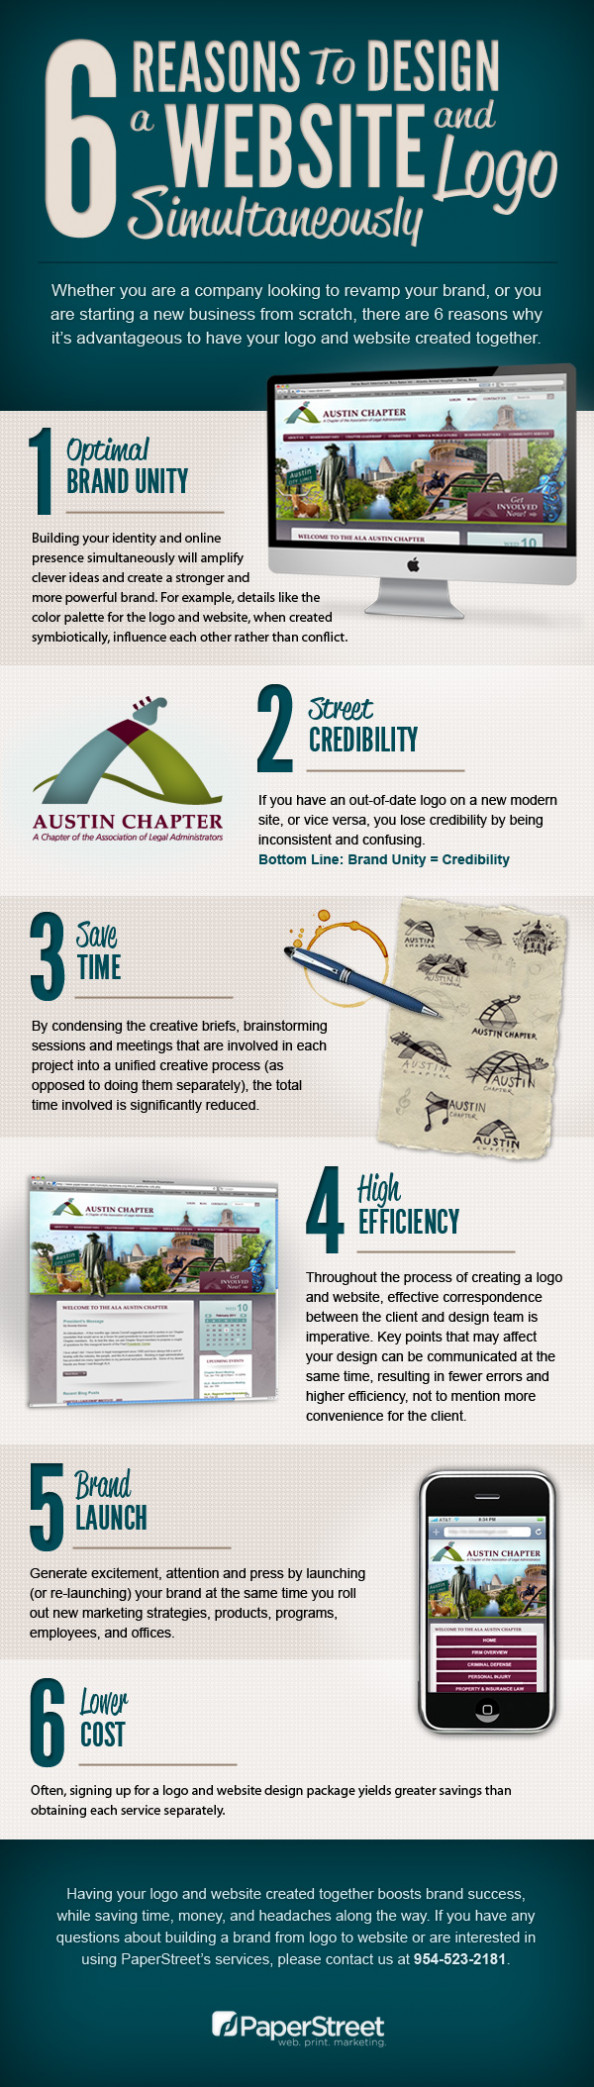 6 Reasons to Design a Website and Logo Simultaneously Infographic